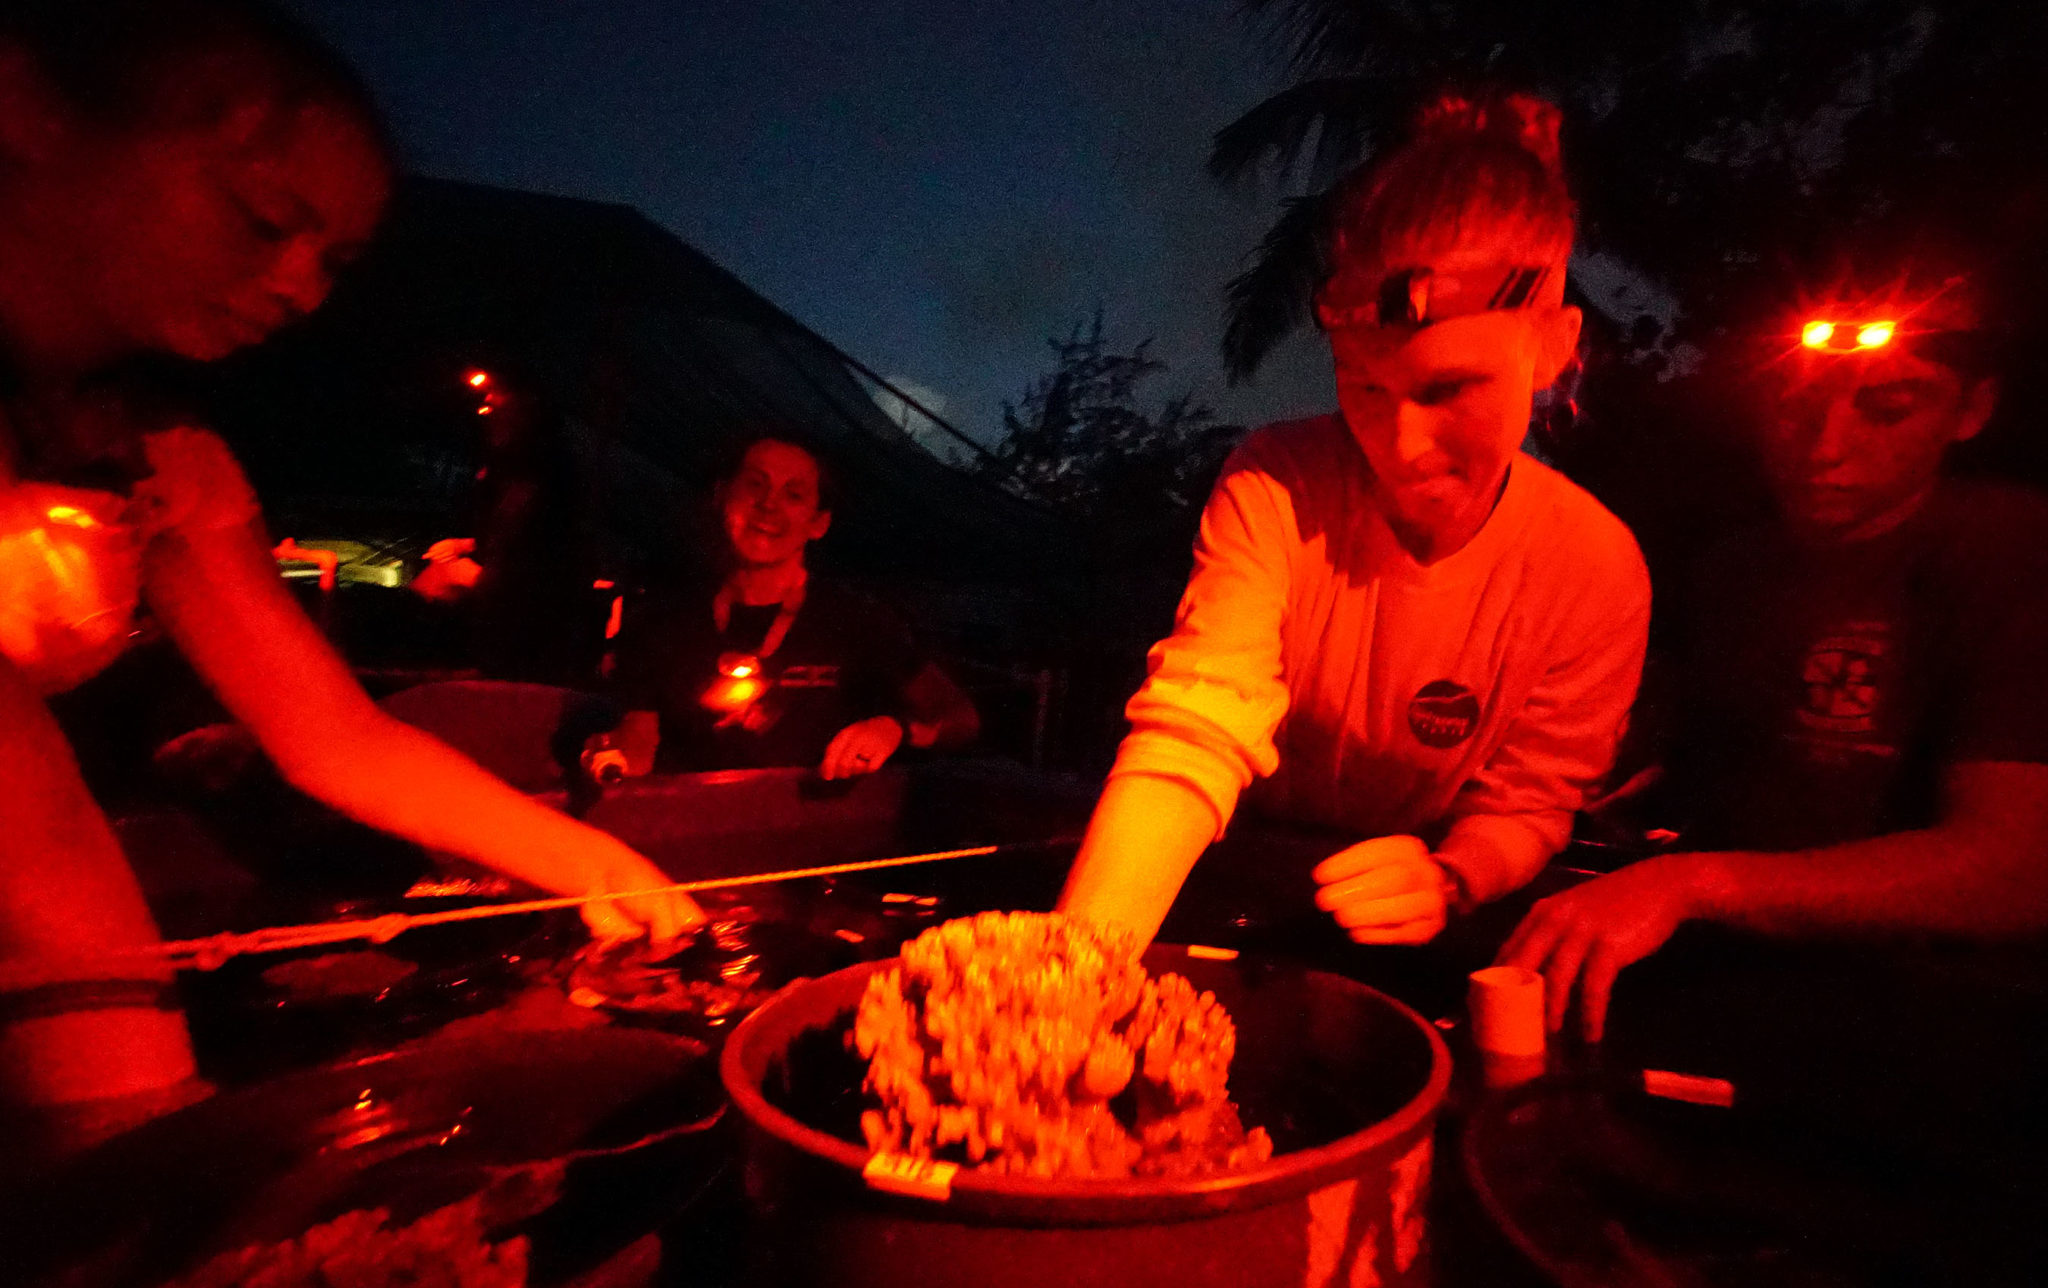 <p></noscript>Volunteers at the Hawaii Institute of Marine Biology wear red head lamps as they prepare for the coral to spawn. The white light affects the mitochondria in coral, making them think it is daytime.</p>